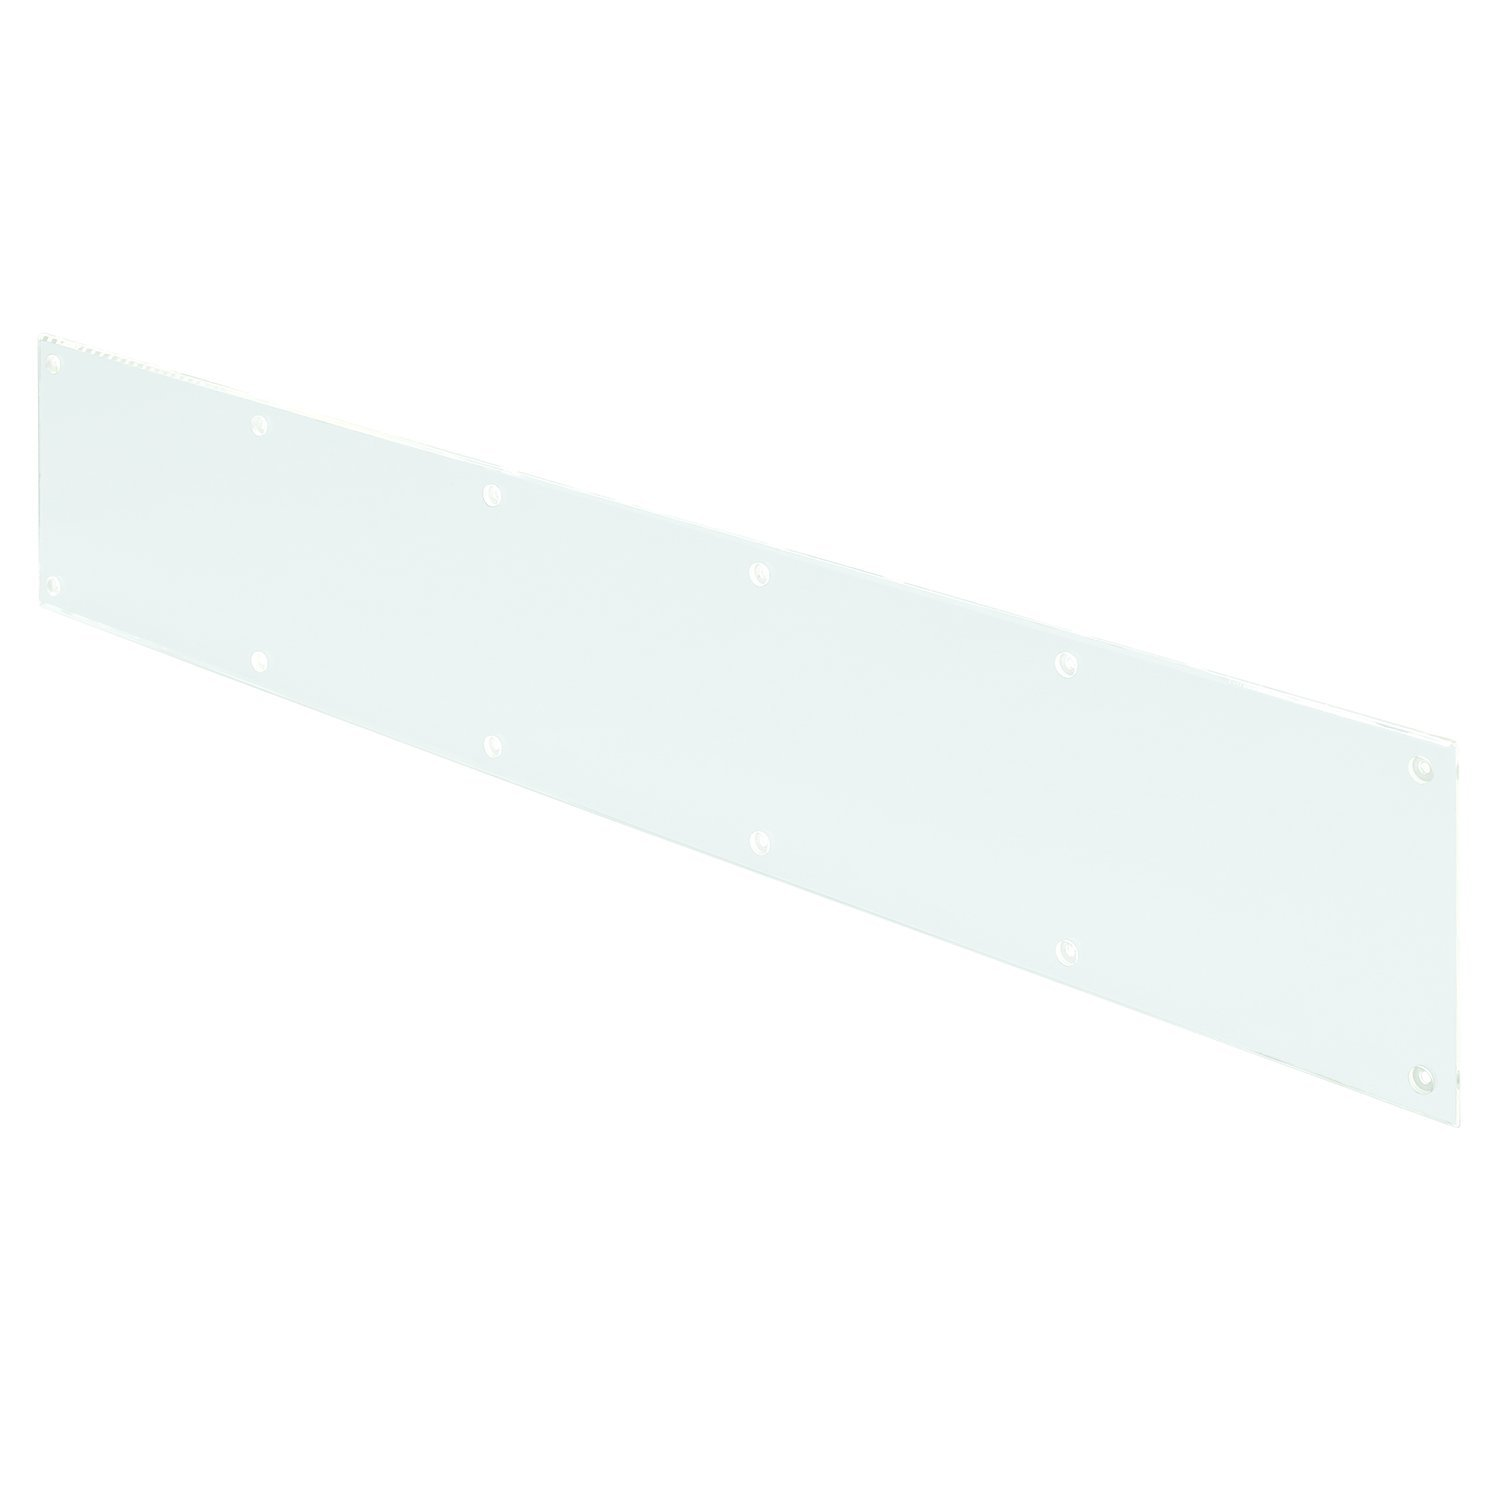 Prime-Line Products J 4925 Kick Plate, 3/16 in. x 34 in. x 6 in, Acrylic, Clear/Transparent, Smooth Finish,